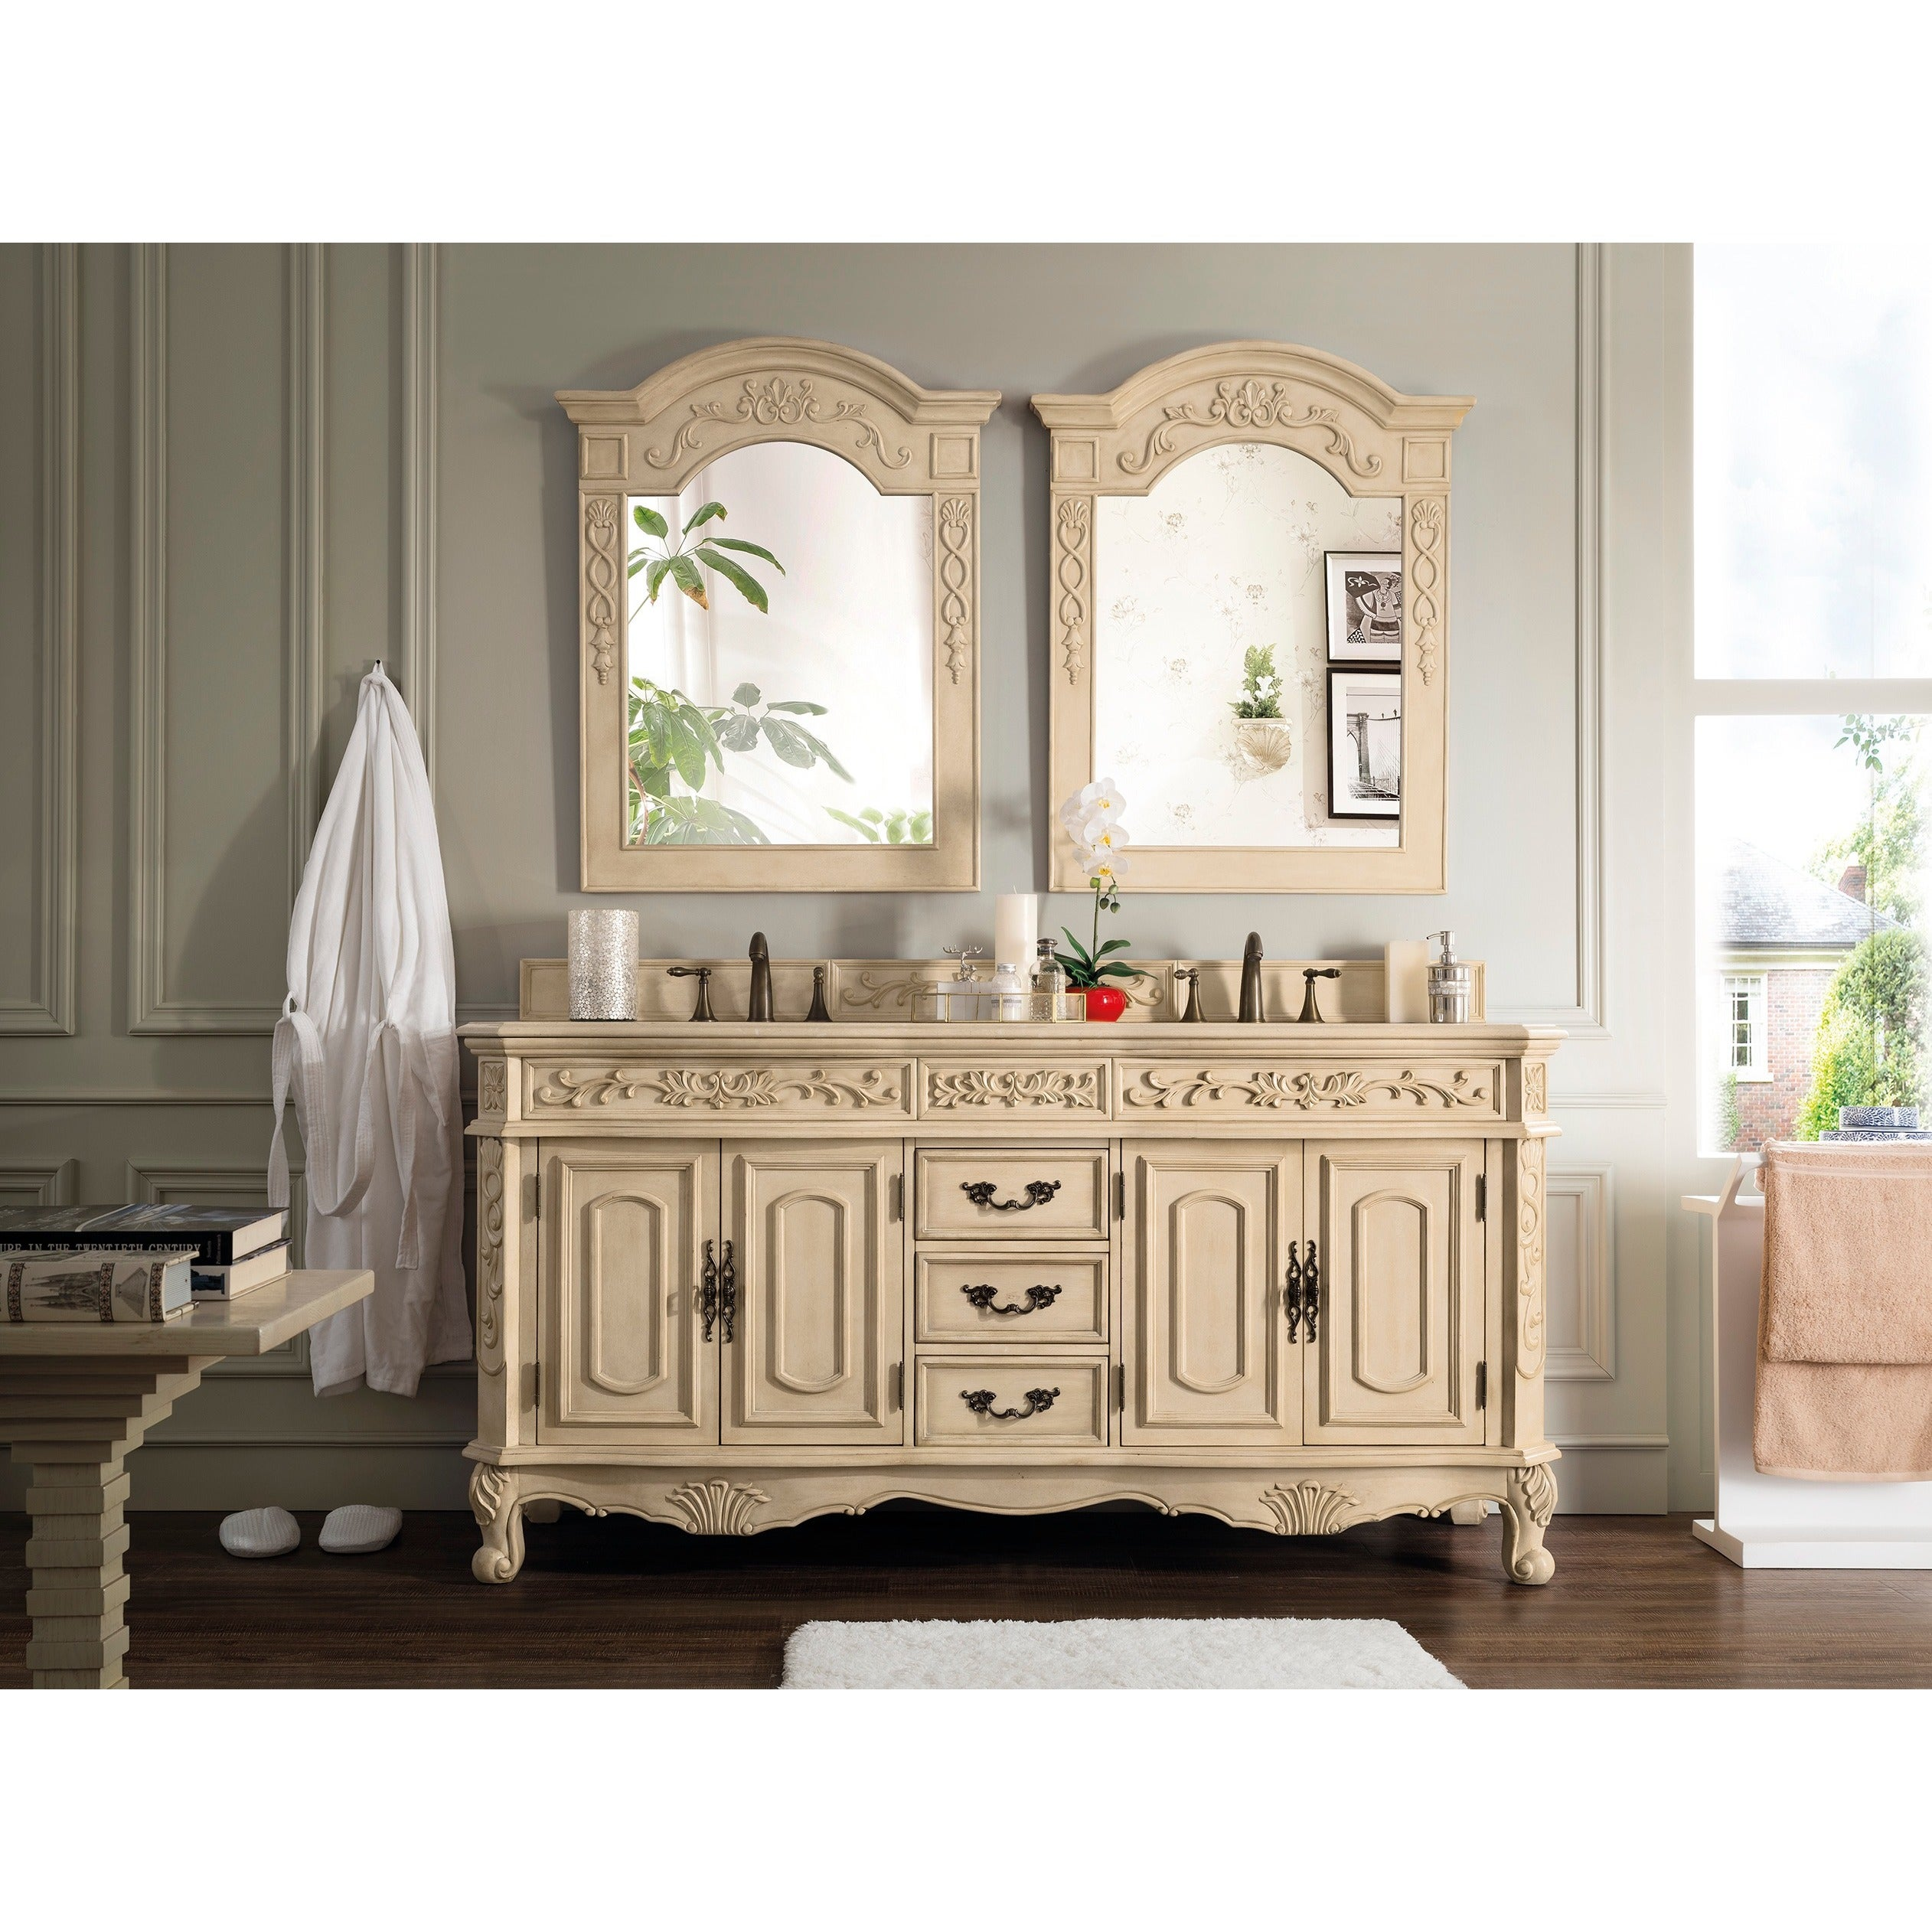 James Martin Furniture Riviera Antique White 72 Inch Double Marble Vanity With Top Free Shipping Today 16551584